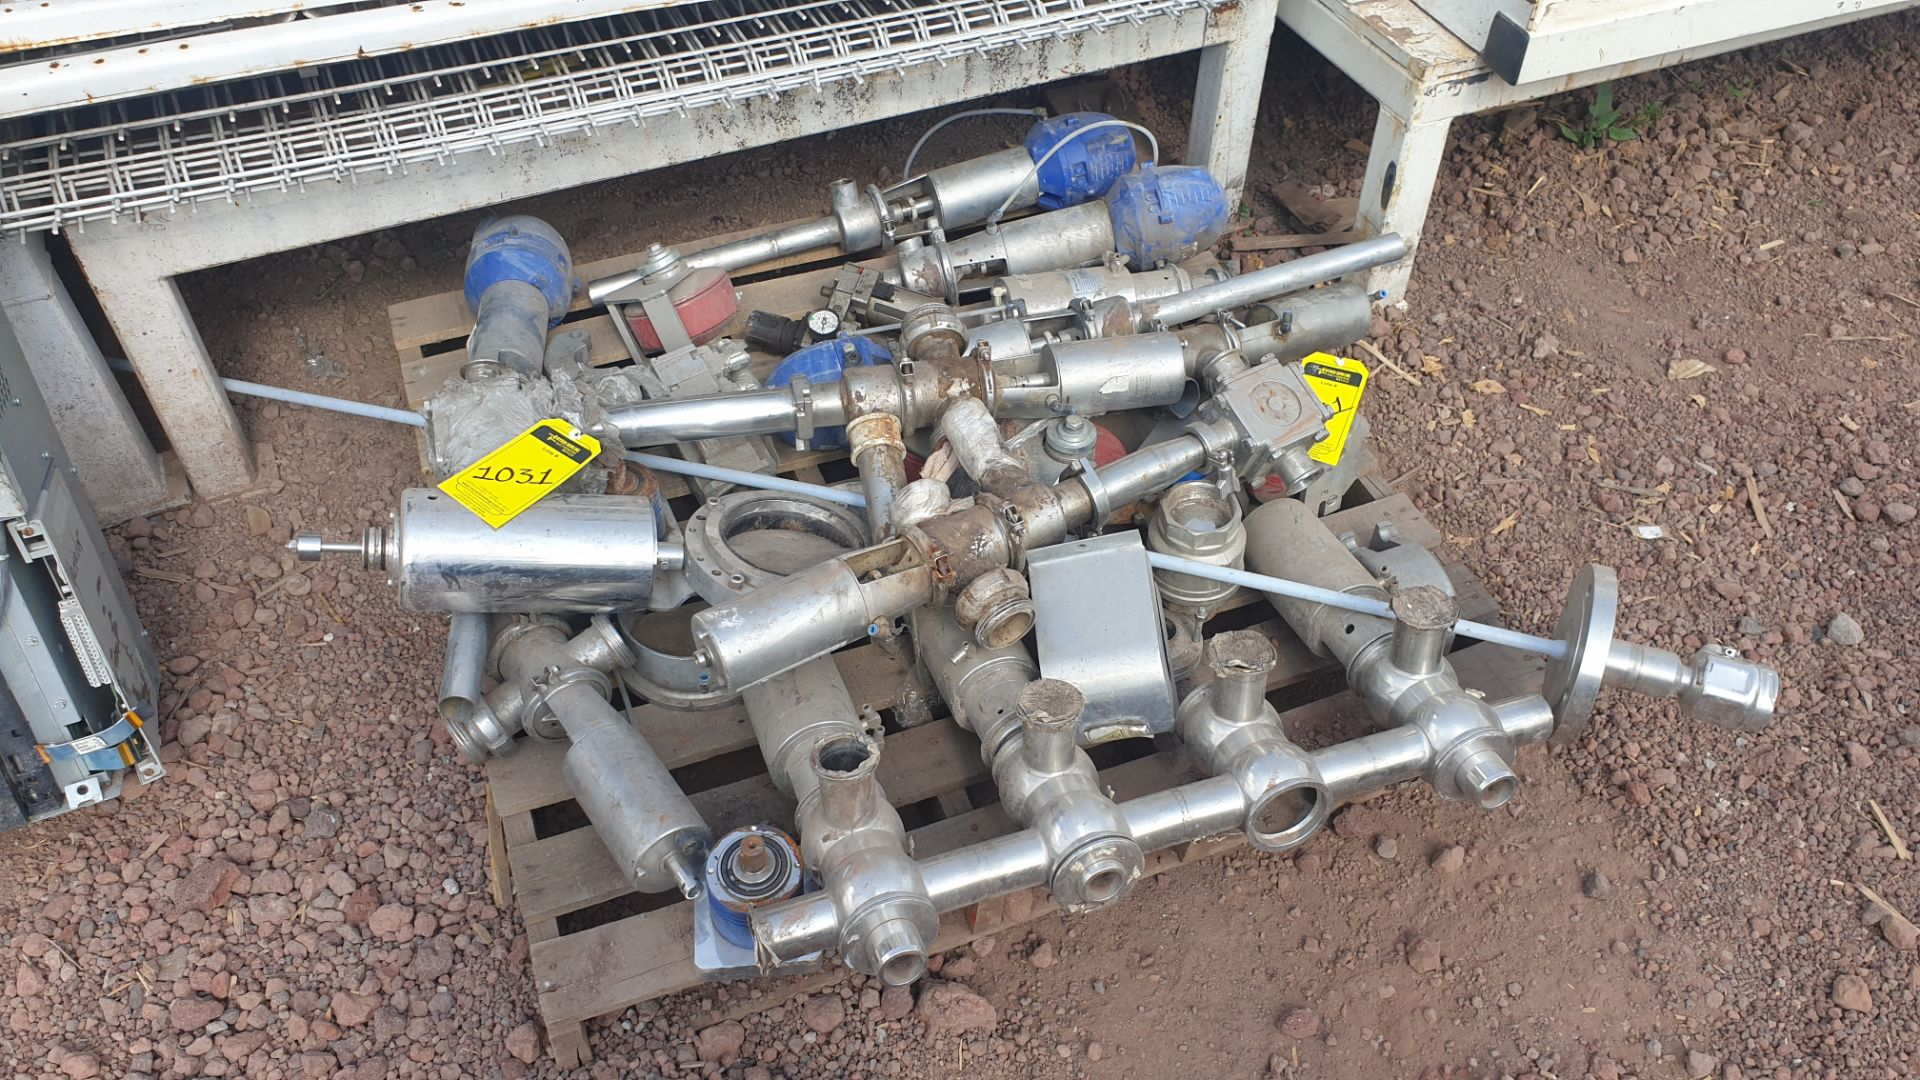 Lot of spare parts, valves, volumetric scales. Please inspect - Image 6 of 8